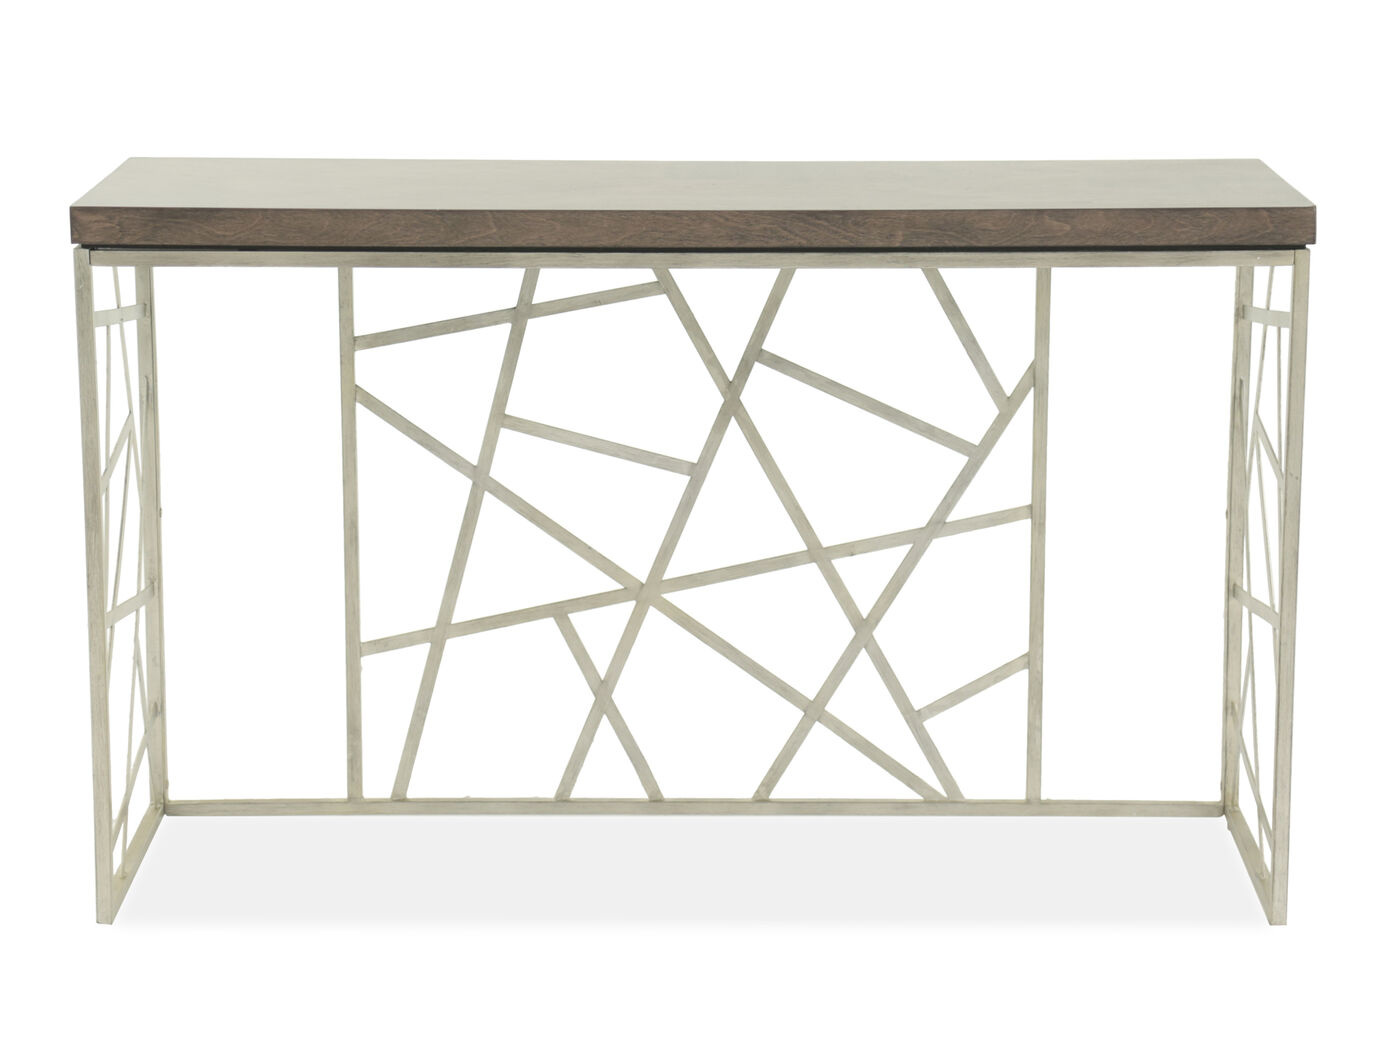 Geometric Base Transitional Sofa Table In Smoked Gray Mathis  ~ Transitional Sofa Tables